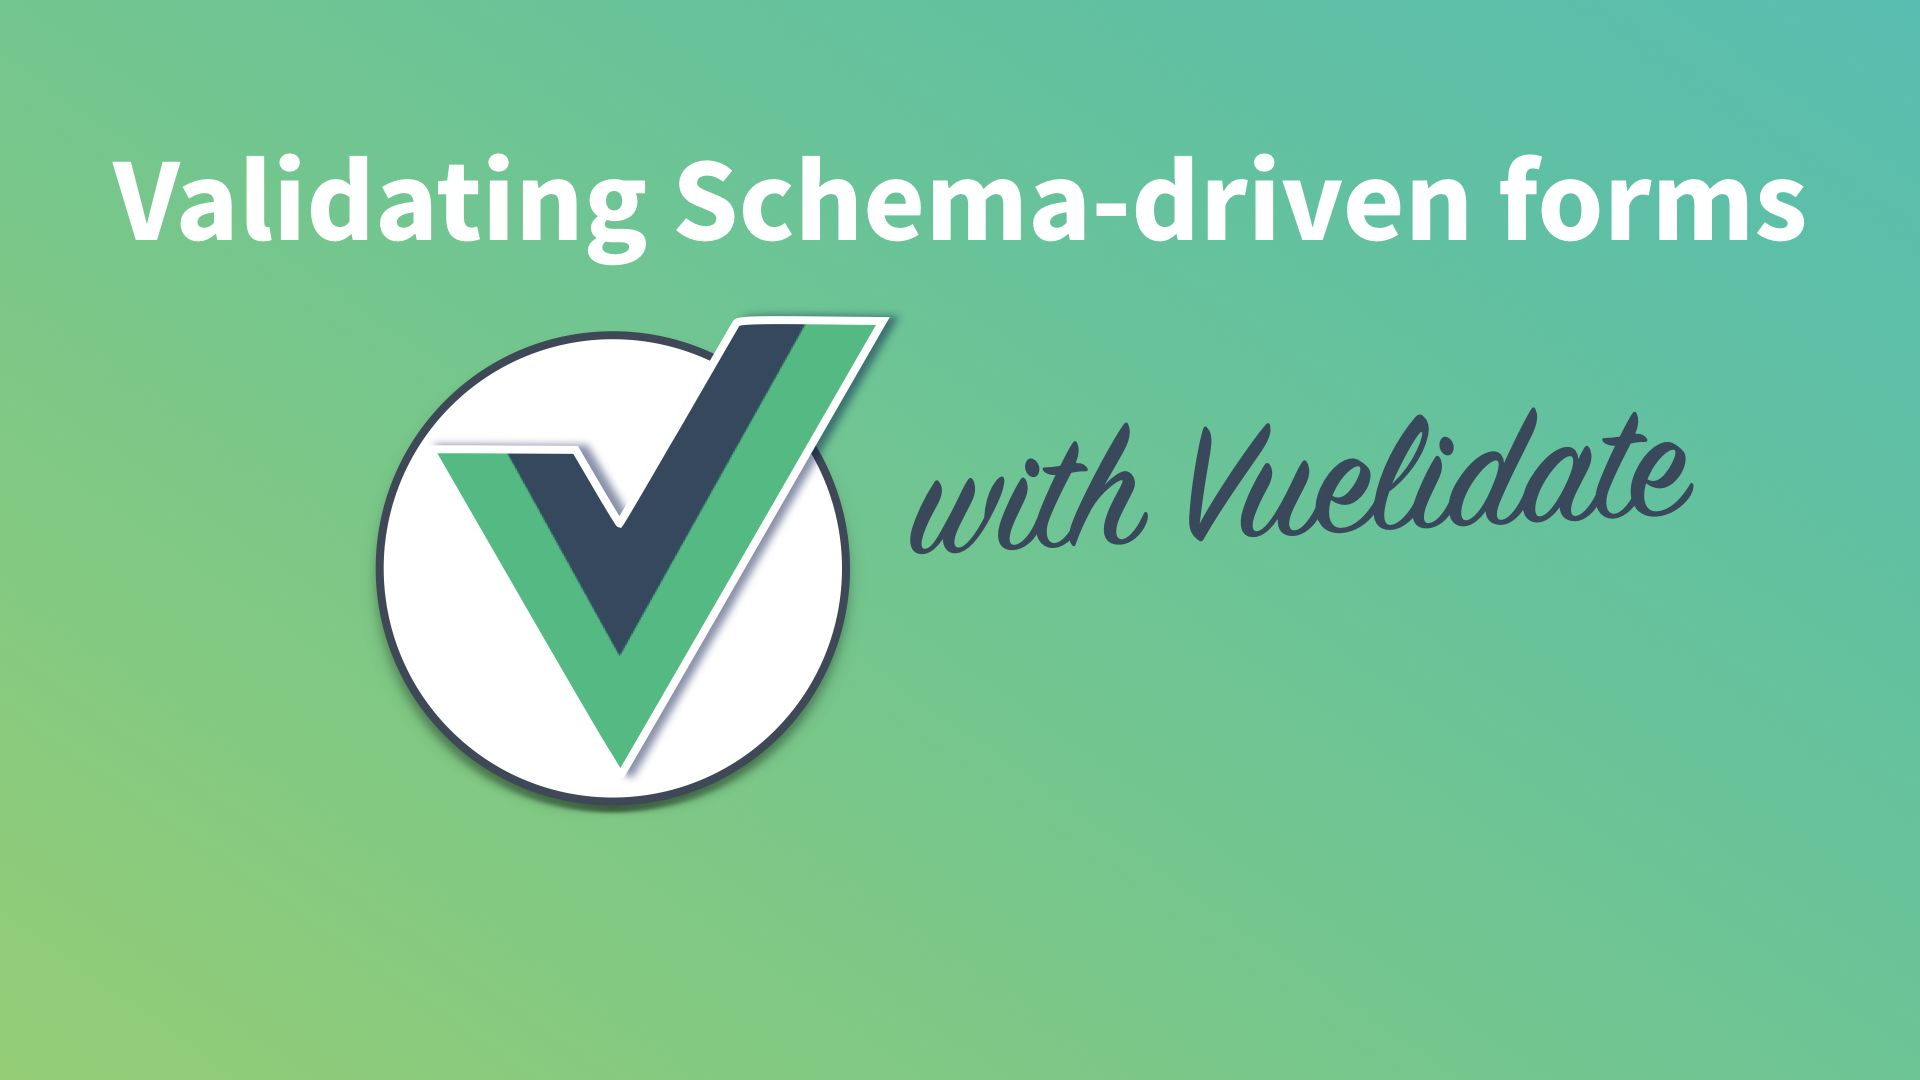 Validating Schema-Driven forms with Vuelidate